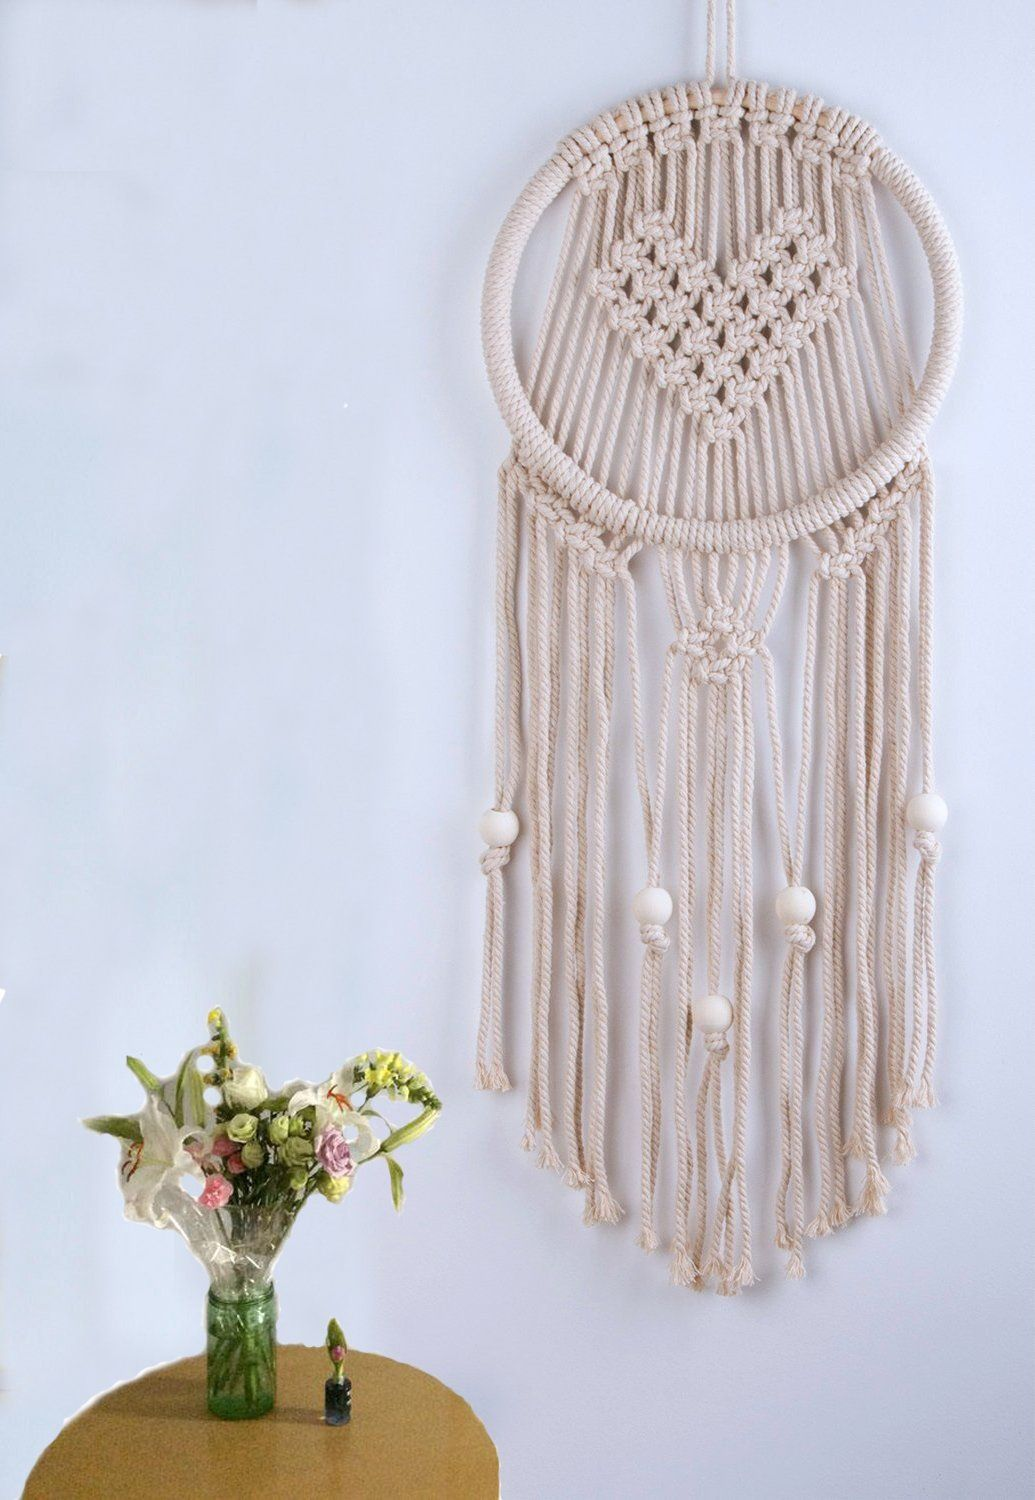 Macrame Wall Hanging Tapestry Heart Shaped Woven Dream